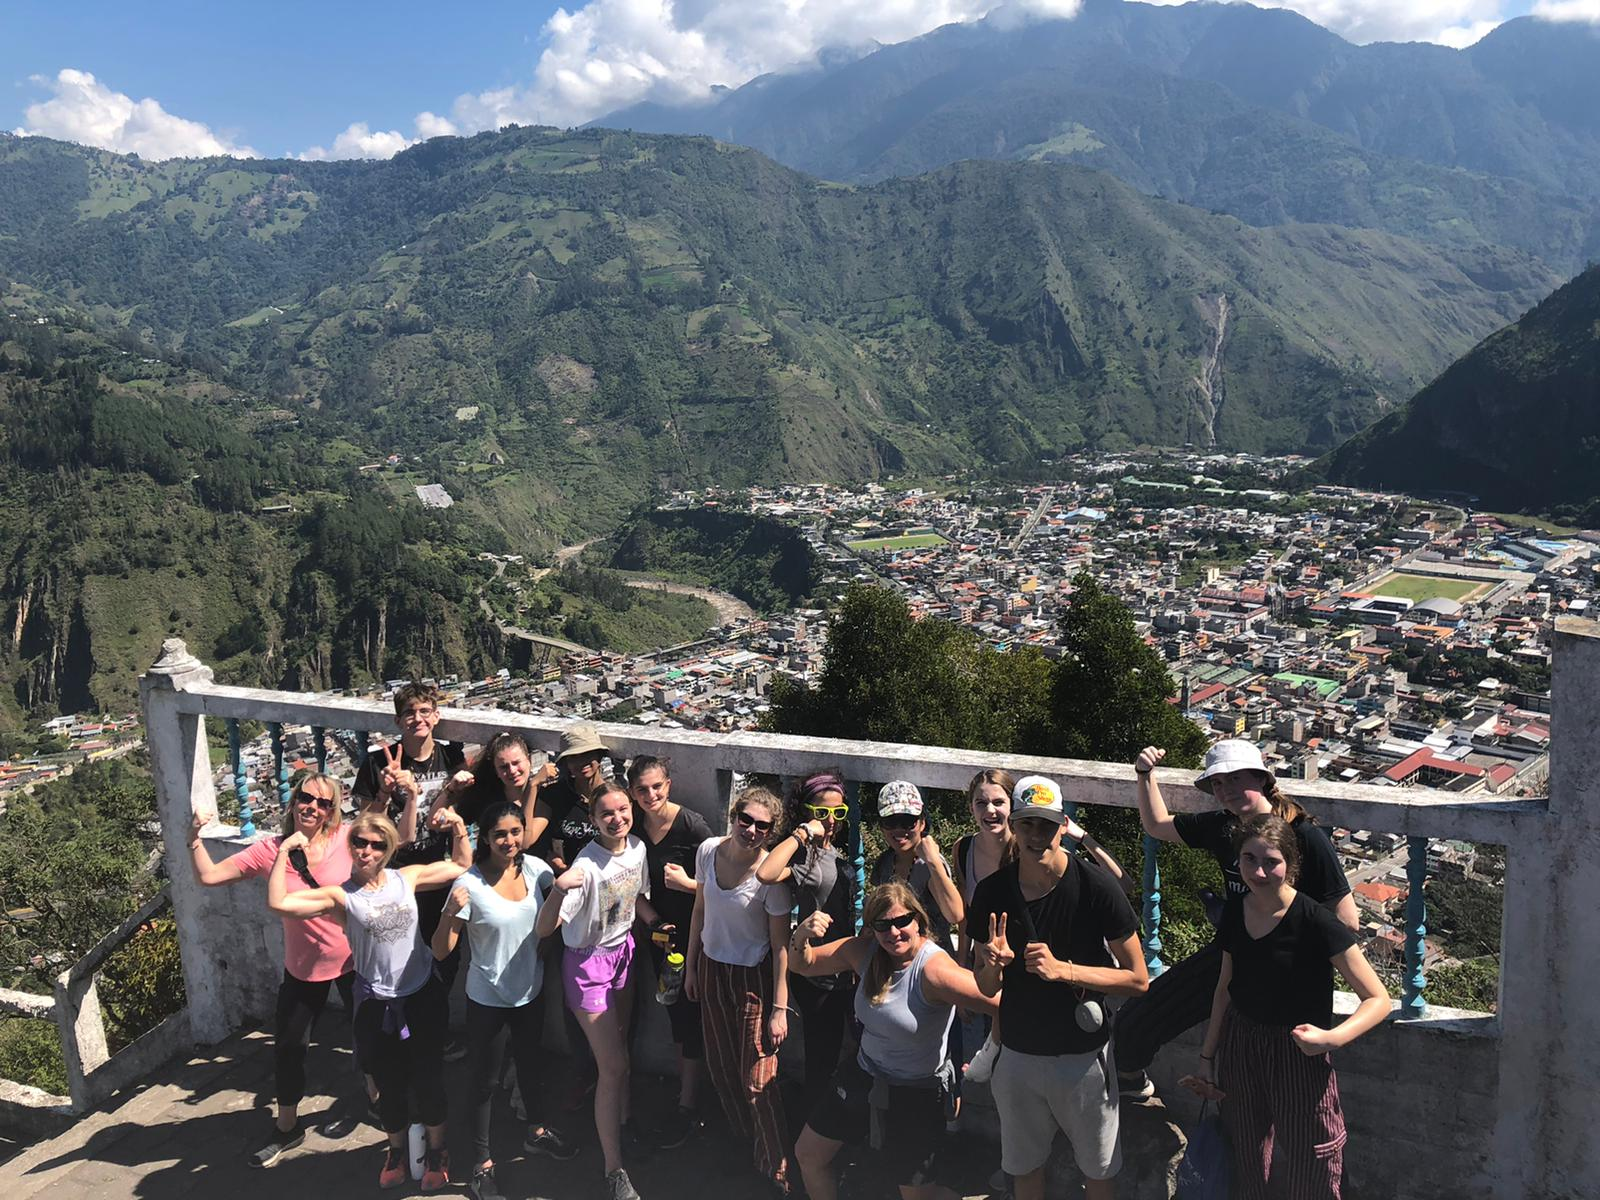 Students high up in the mountains of Ecuador